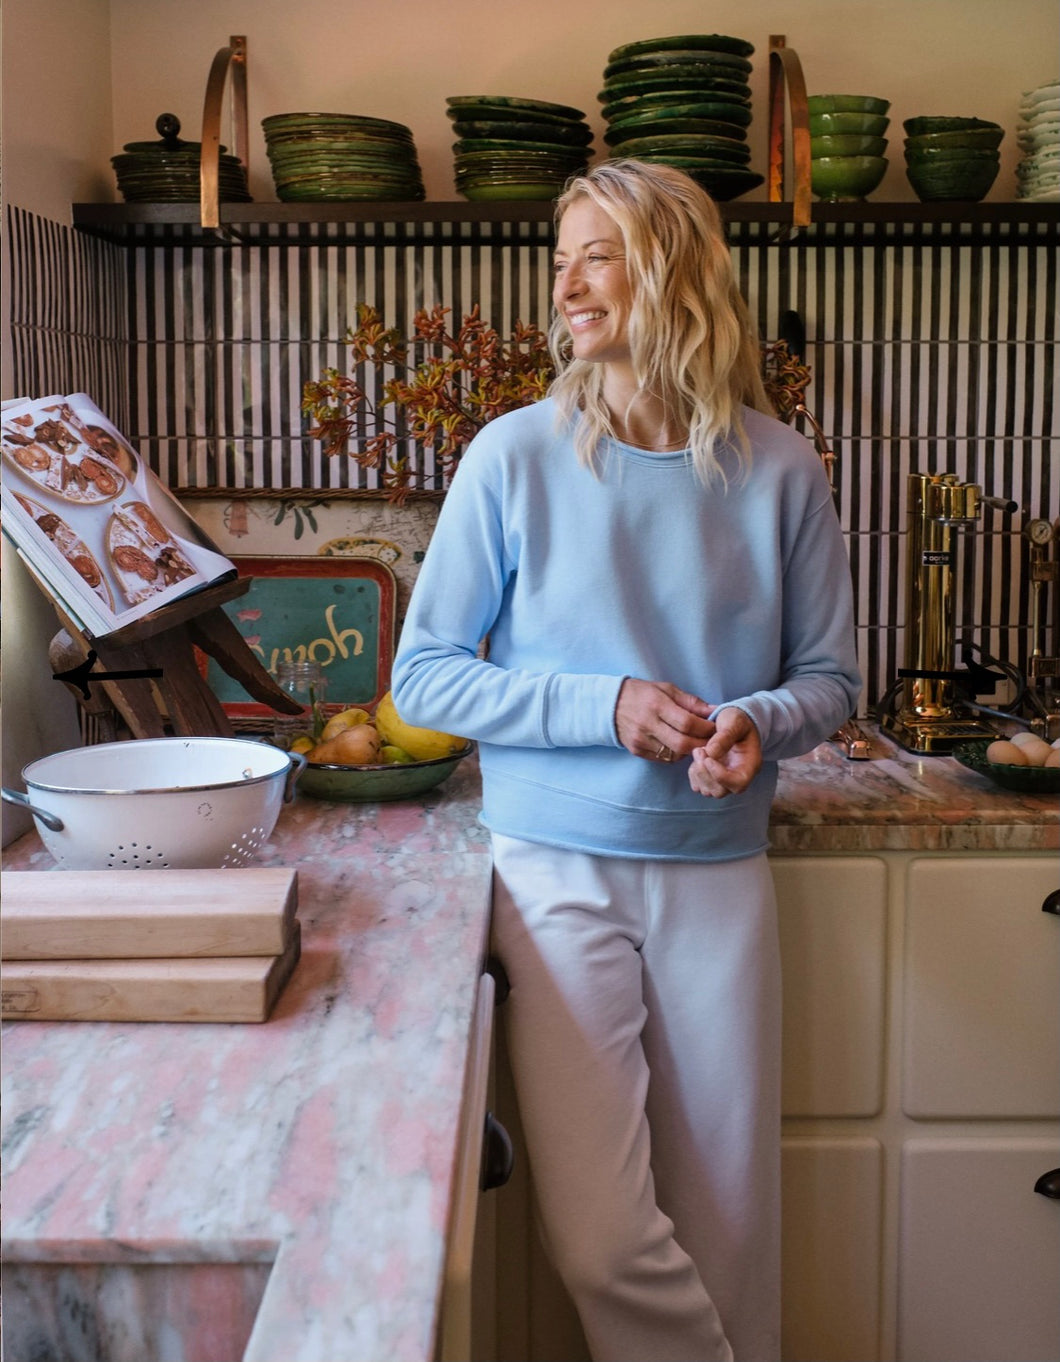 Woman standing in kitchen smiling and looking out a window. Wearing white sweatpants and a light blue long sleeve sweater.